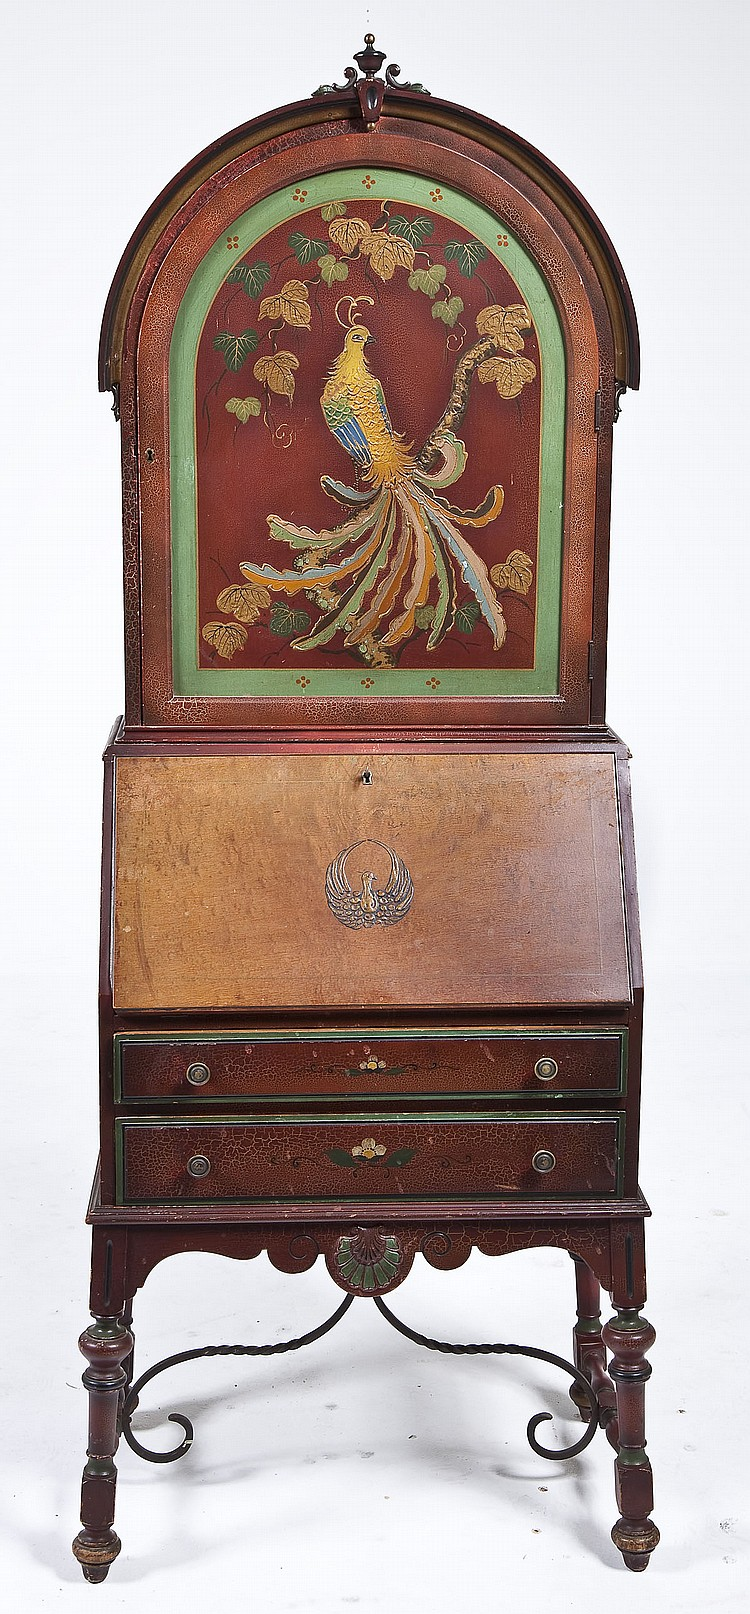 Mechanics Furniture Peacock Secretary